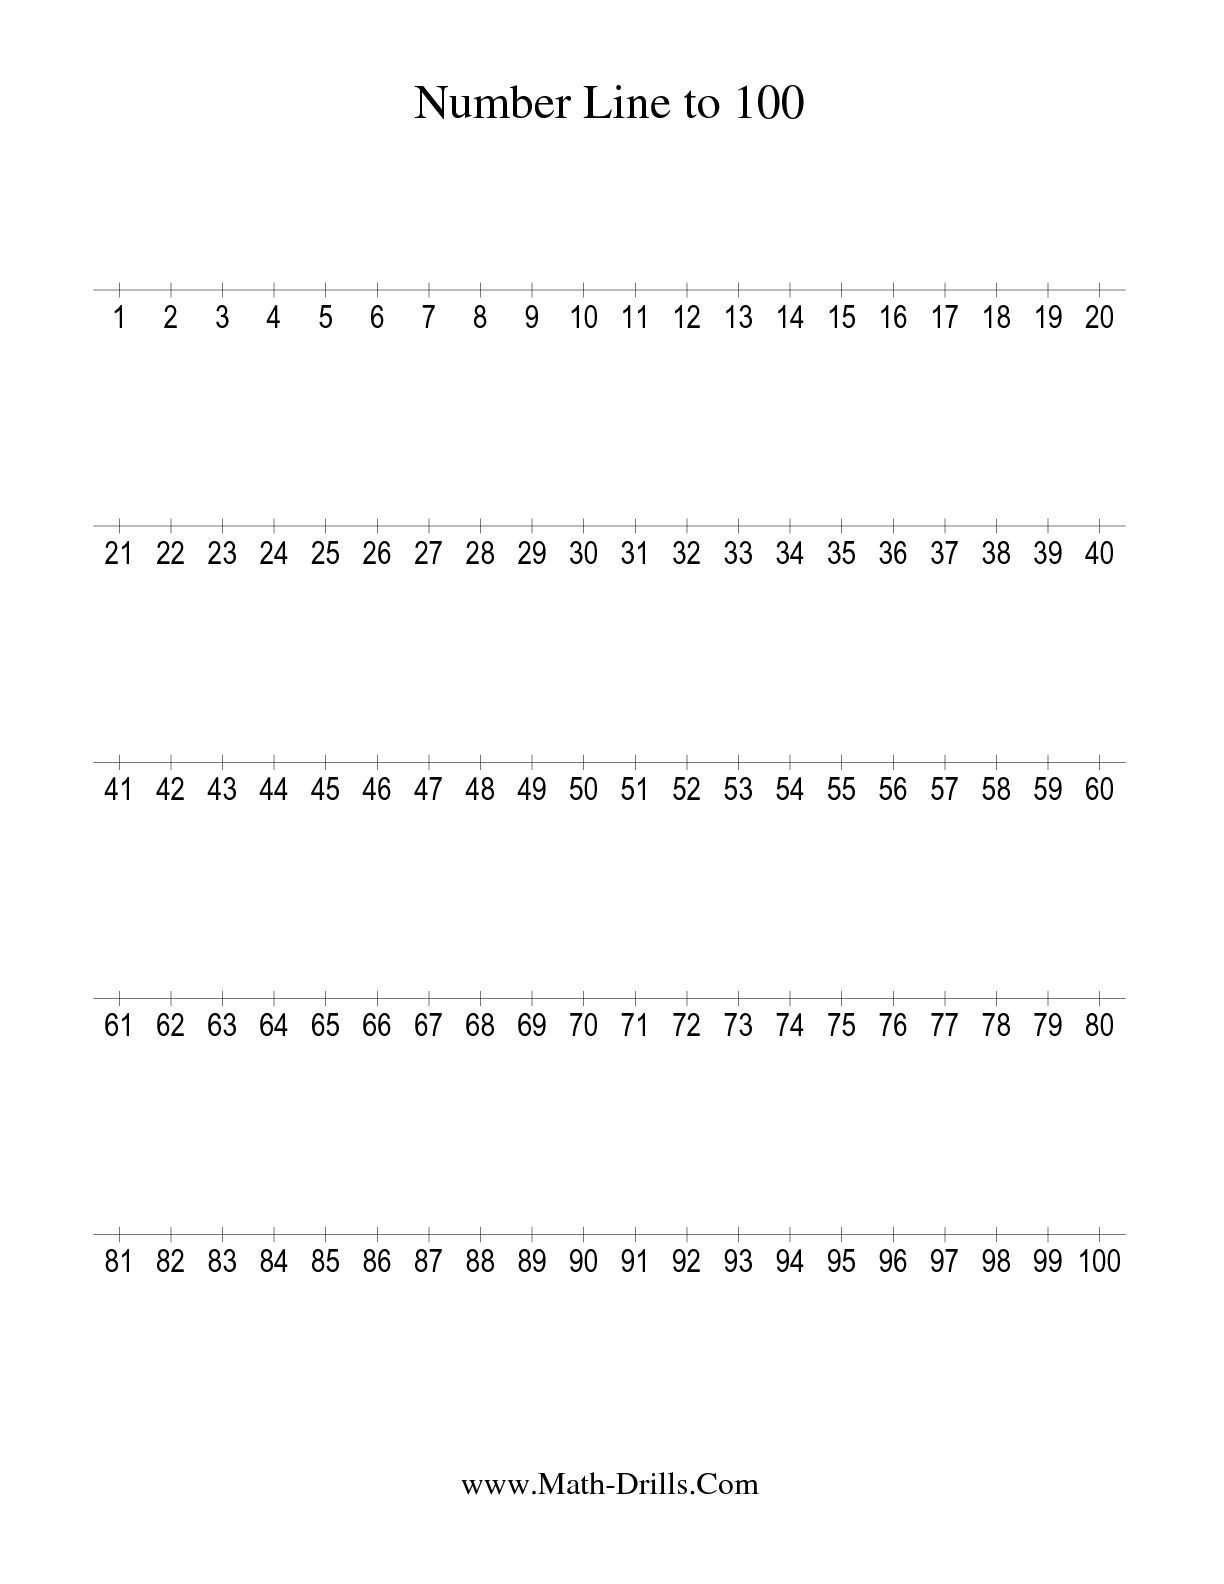 Blank Number Line Worksheet the Number Line to 100 Counting by 1 Math Worksheet From the